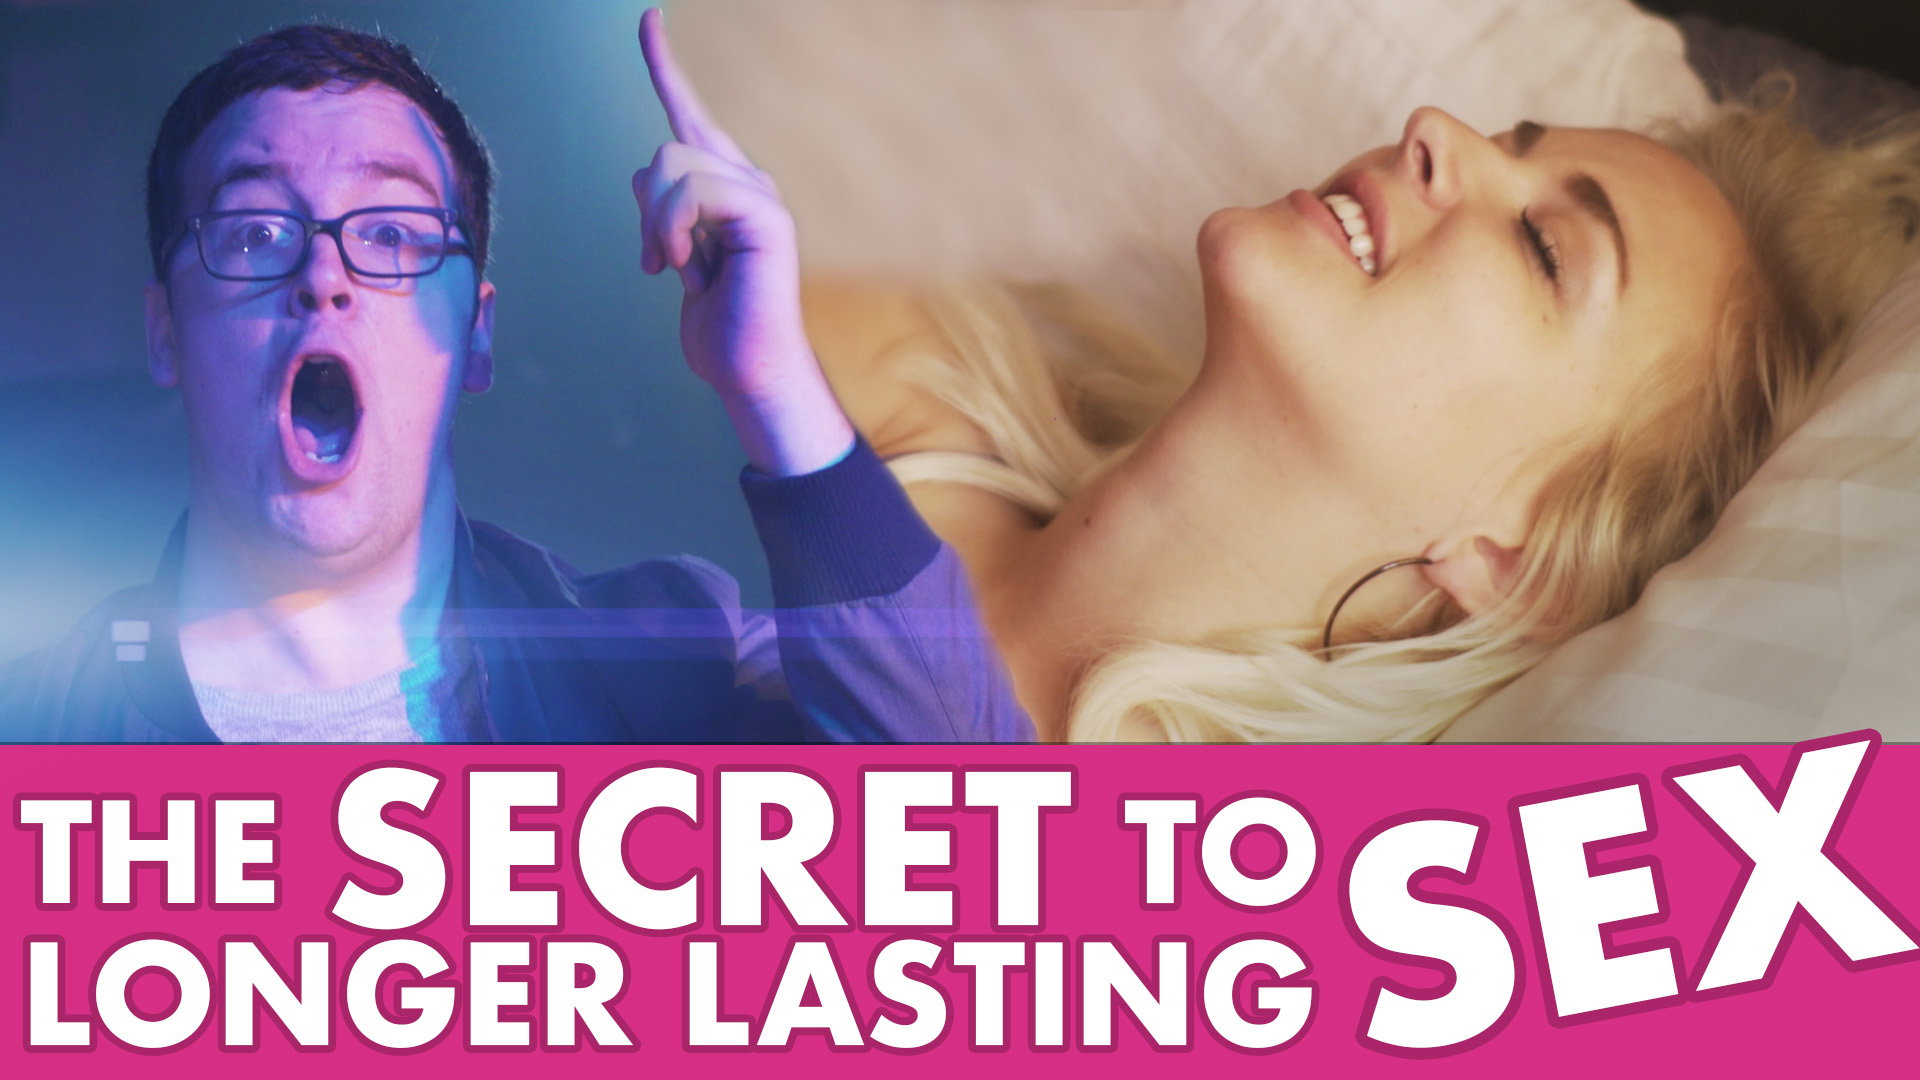 The Secret to Longer Last Sex